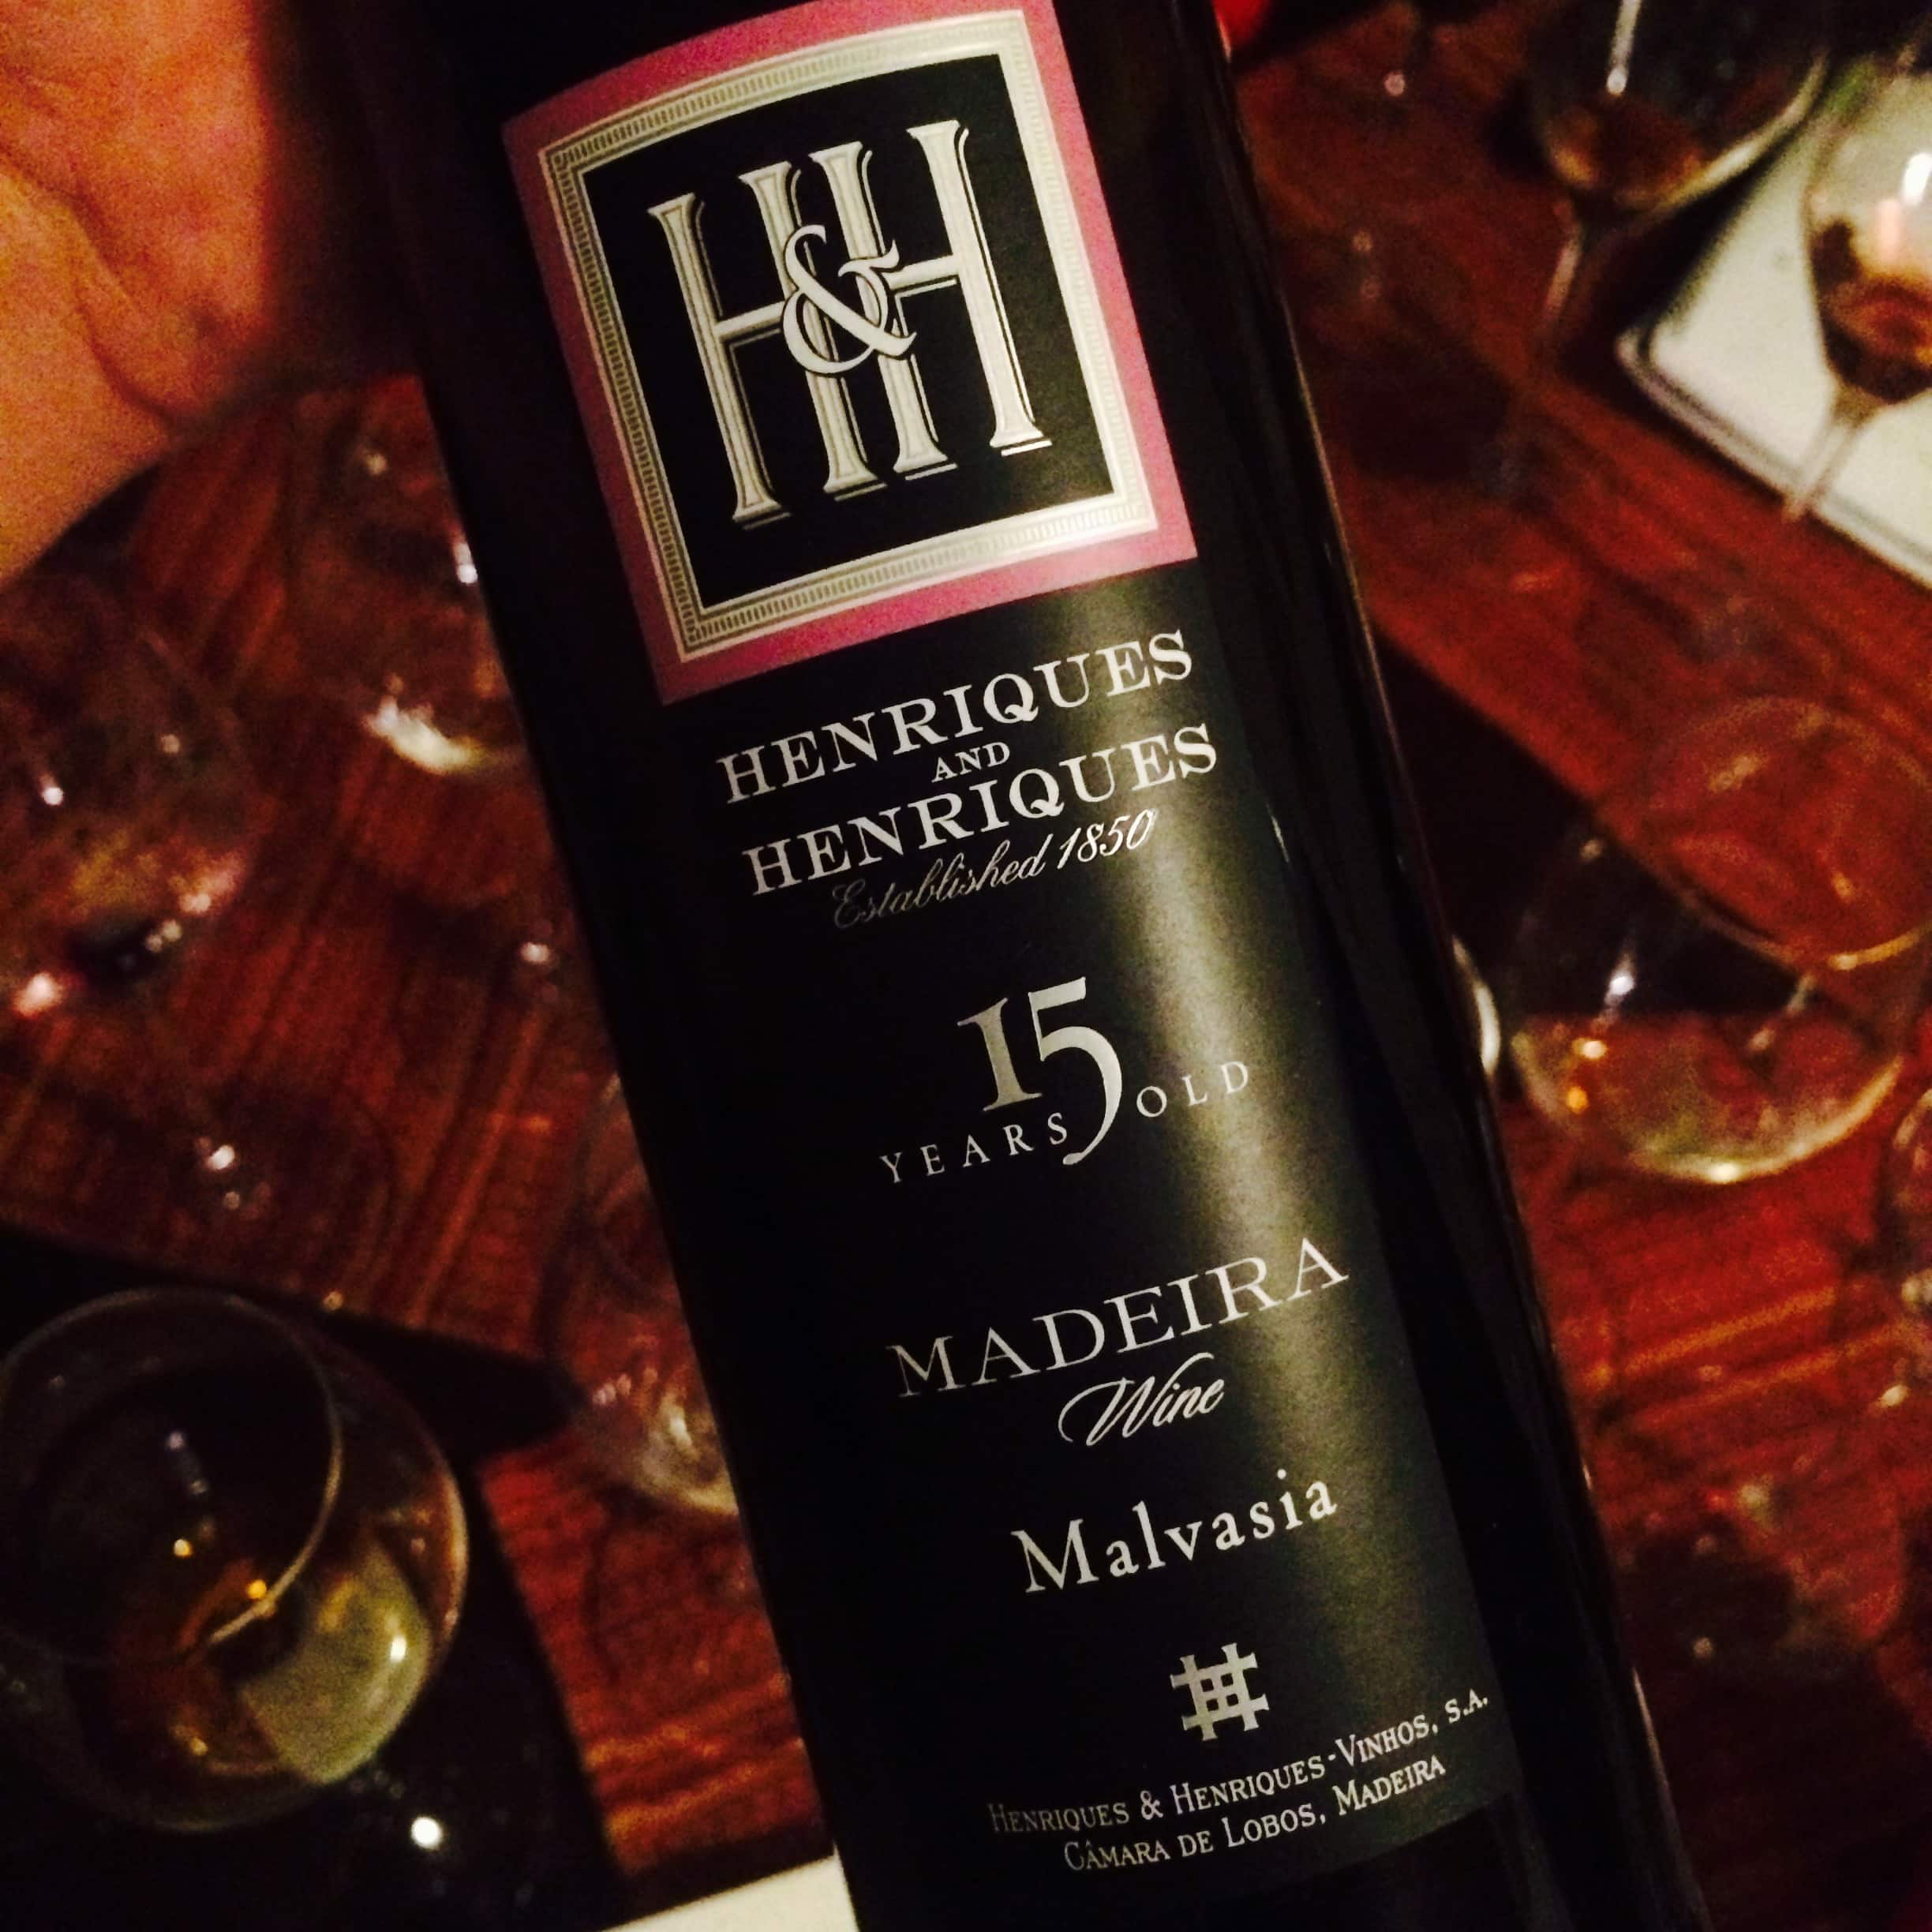 Henriques and Henriques, 15 Year Old Malvasia Madeira